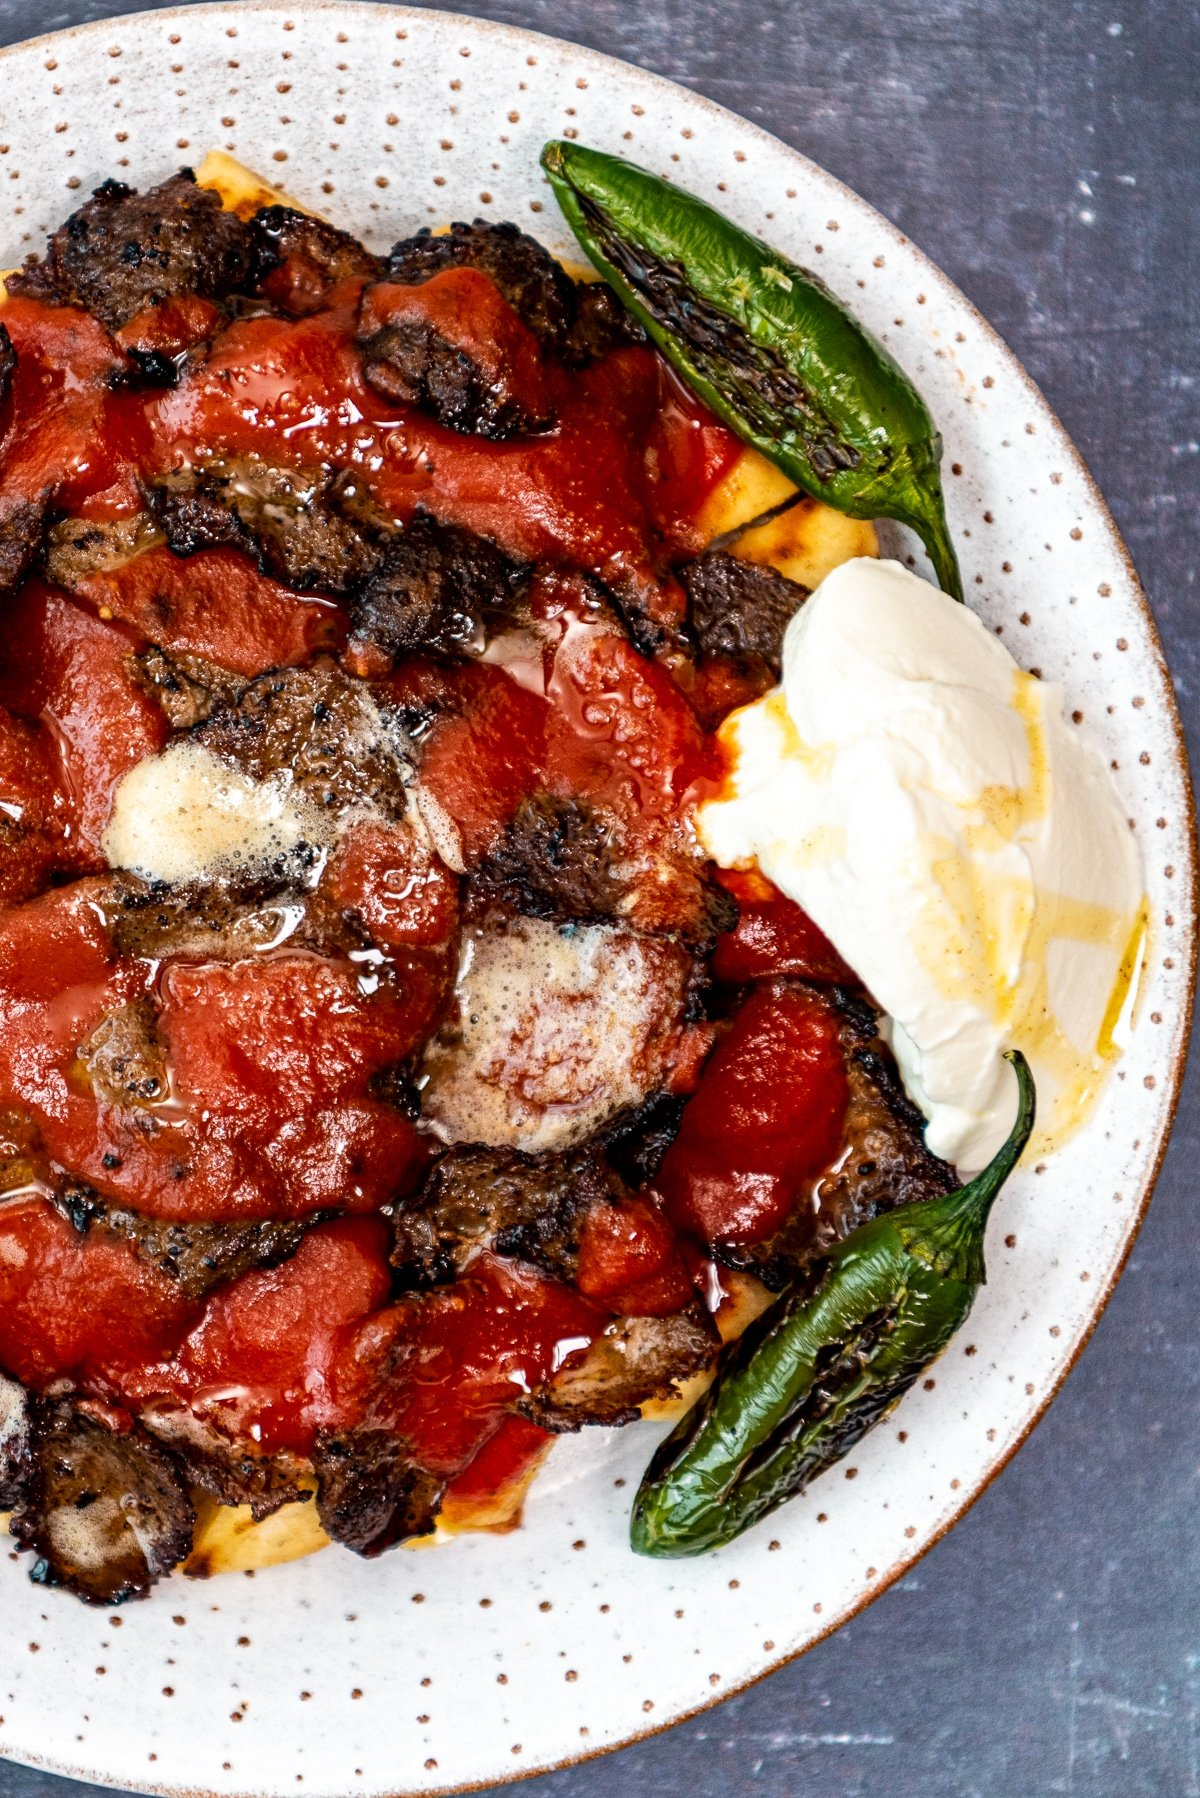 Homemade Iskender kebab served with tomato sauce, green peppers and yogurt on a plate.